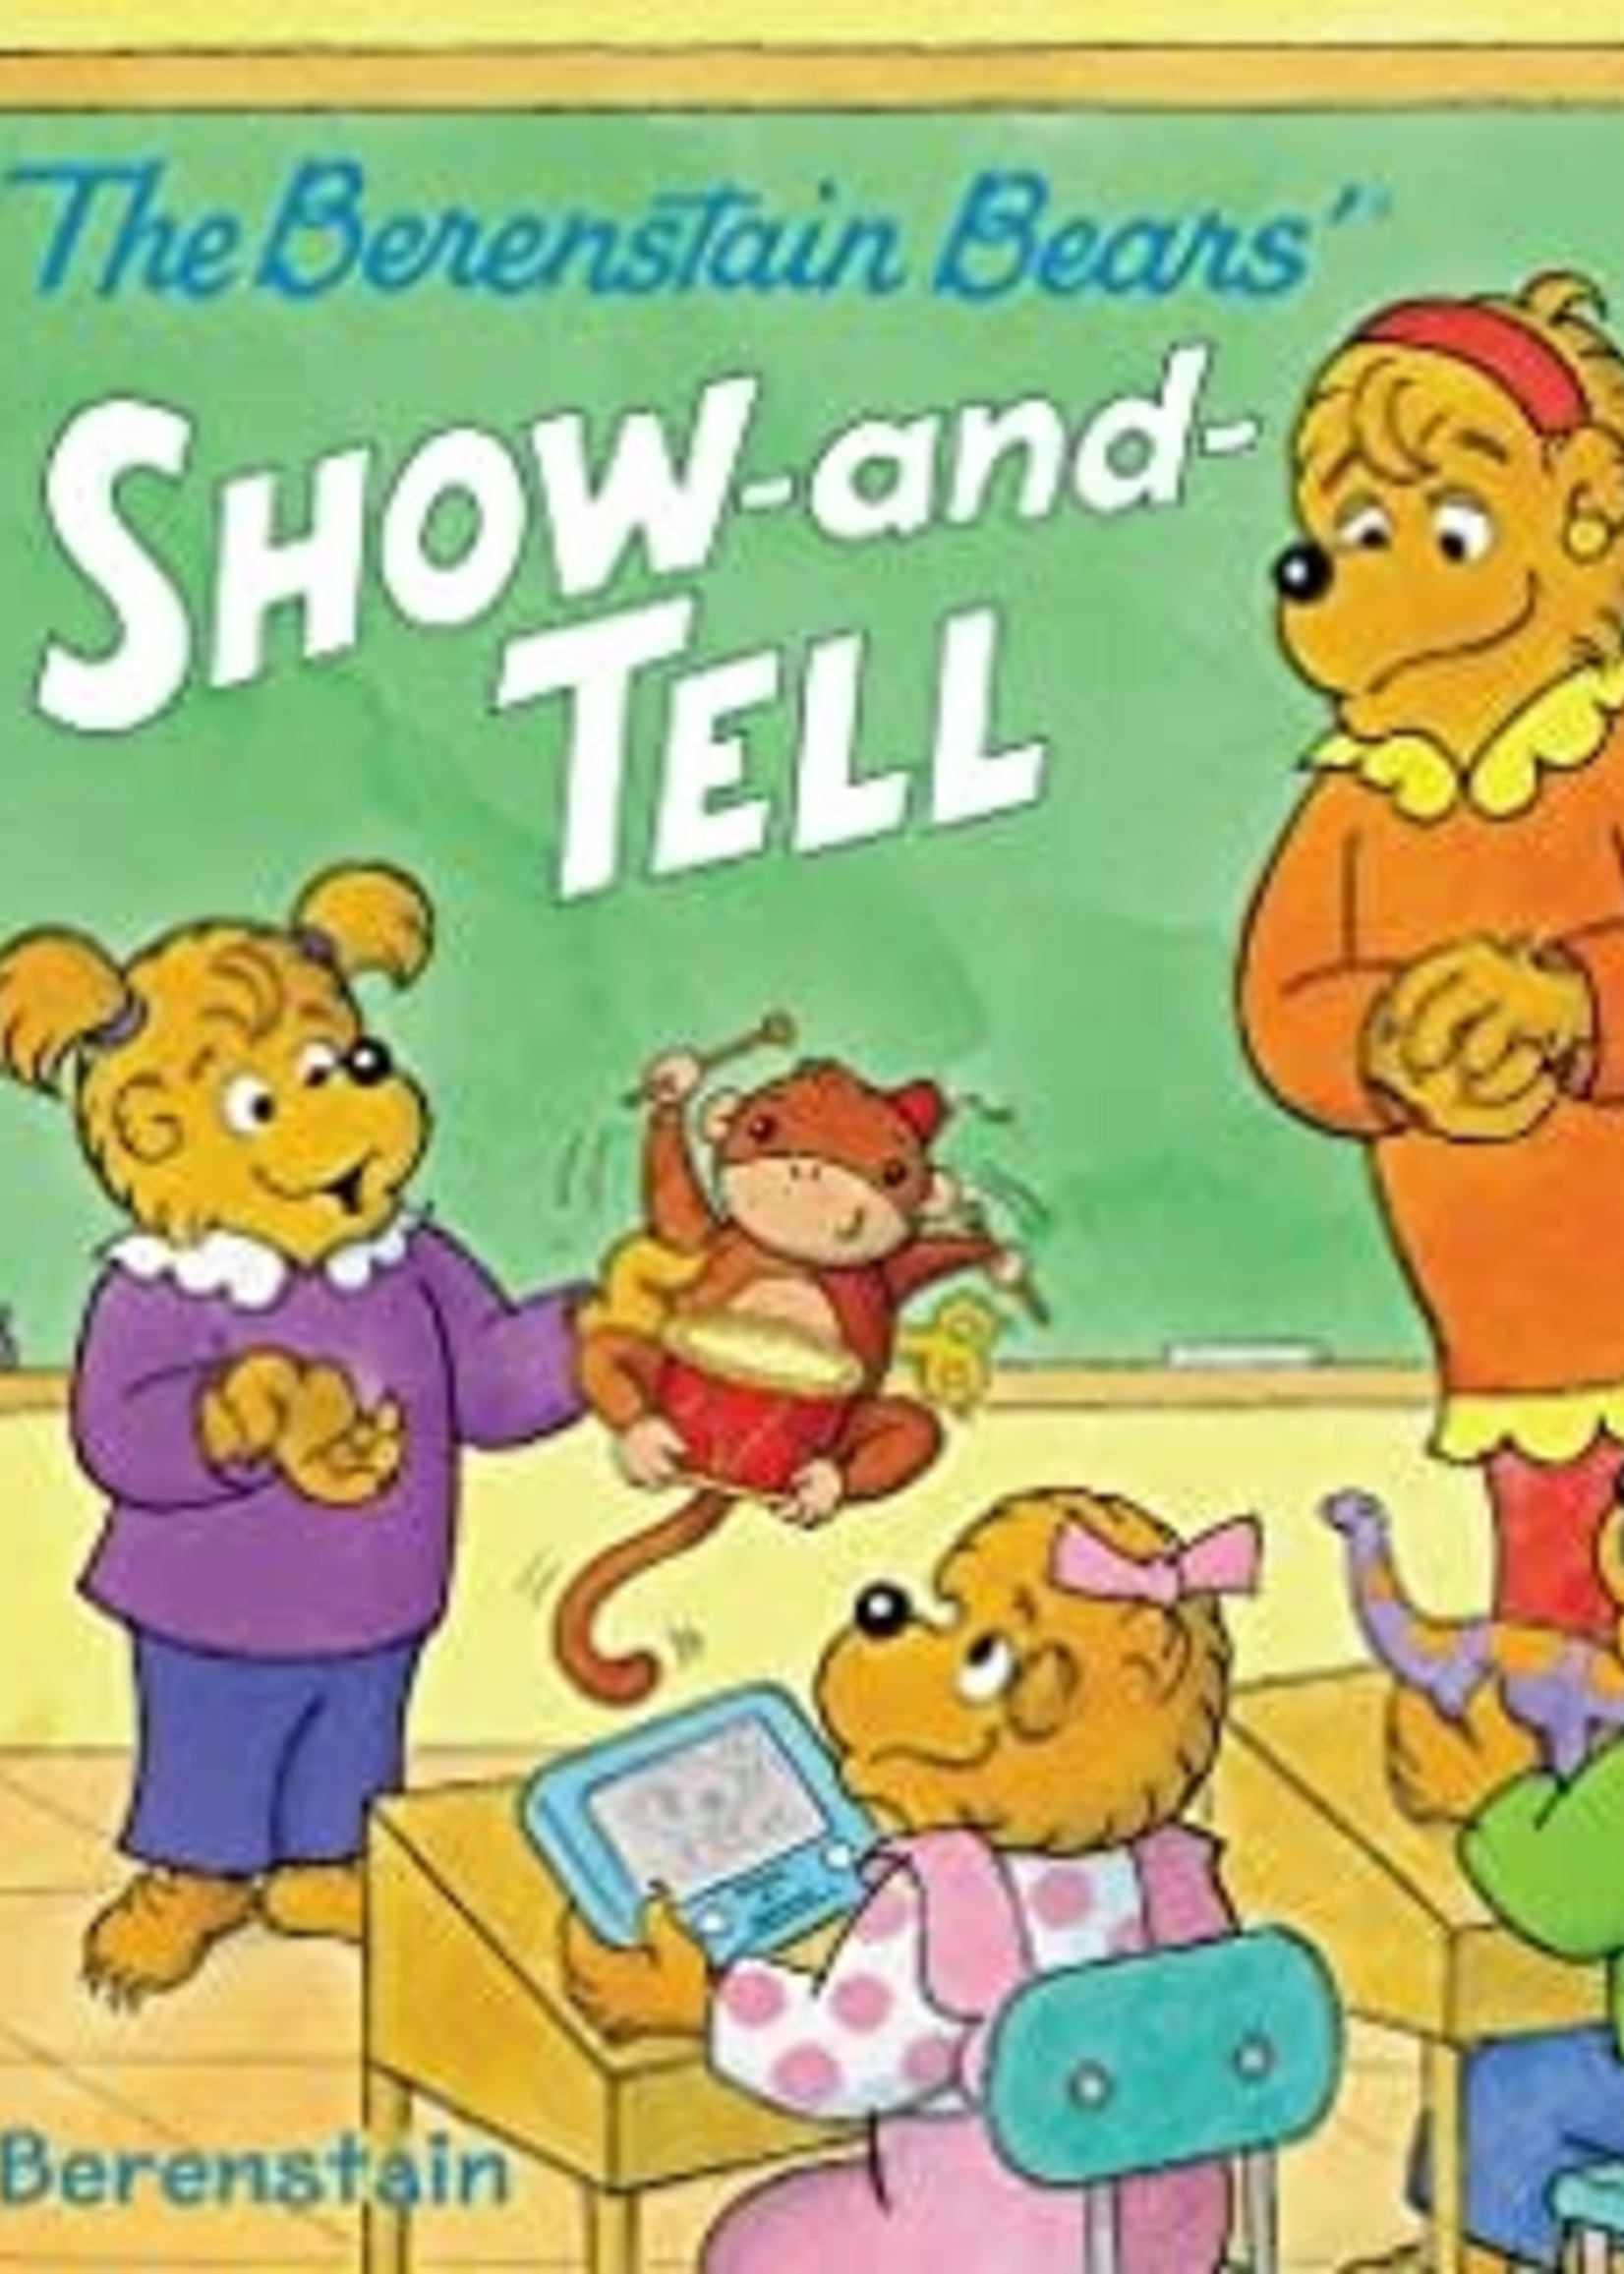 The Berenstain Bears' Show-and-Tell by Mike Berenstain